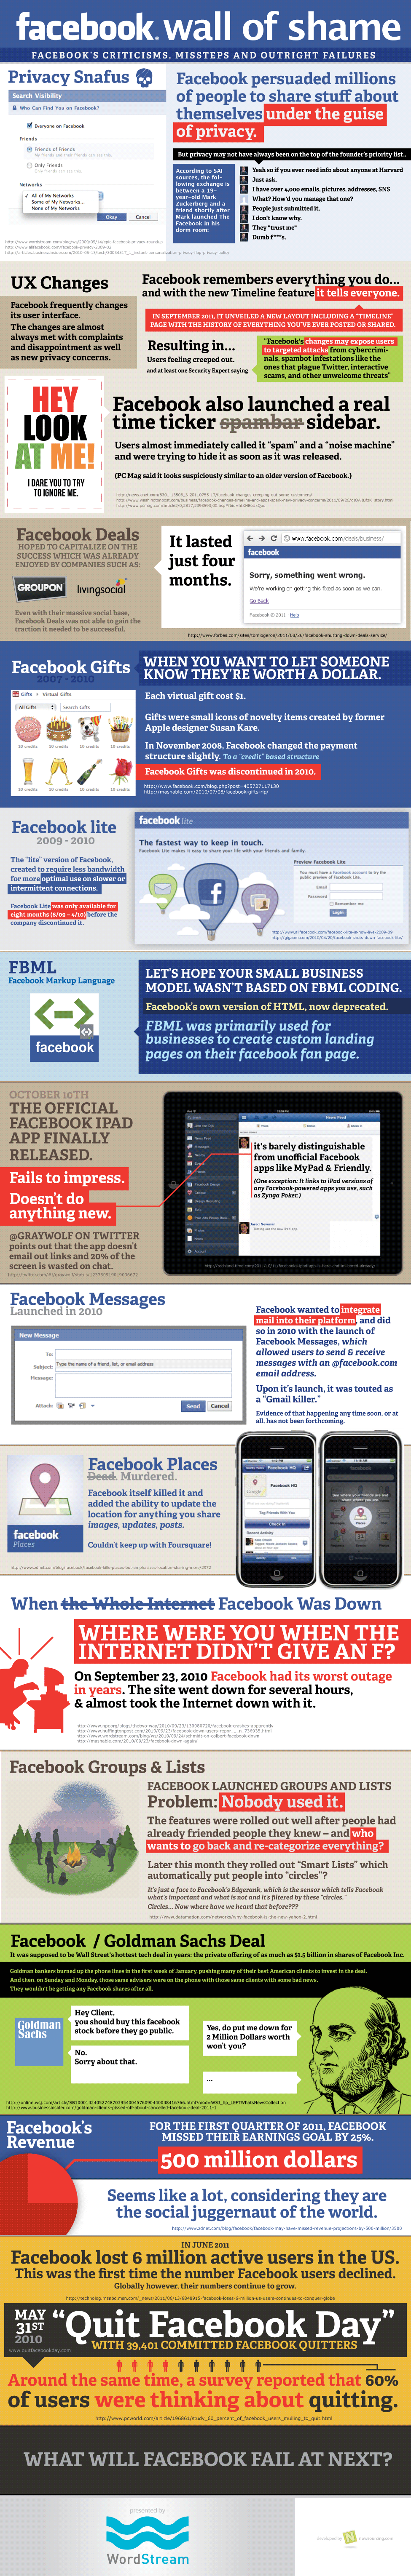 Infografik - Facebook Wall of Shame